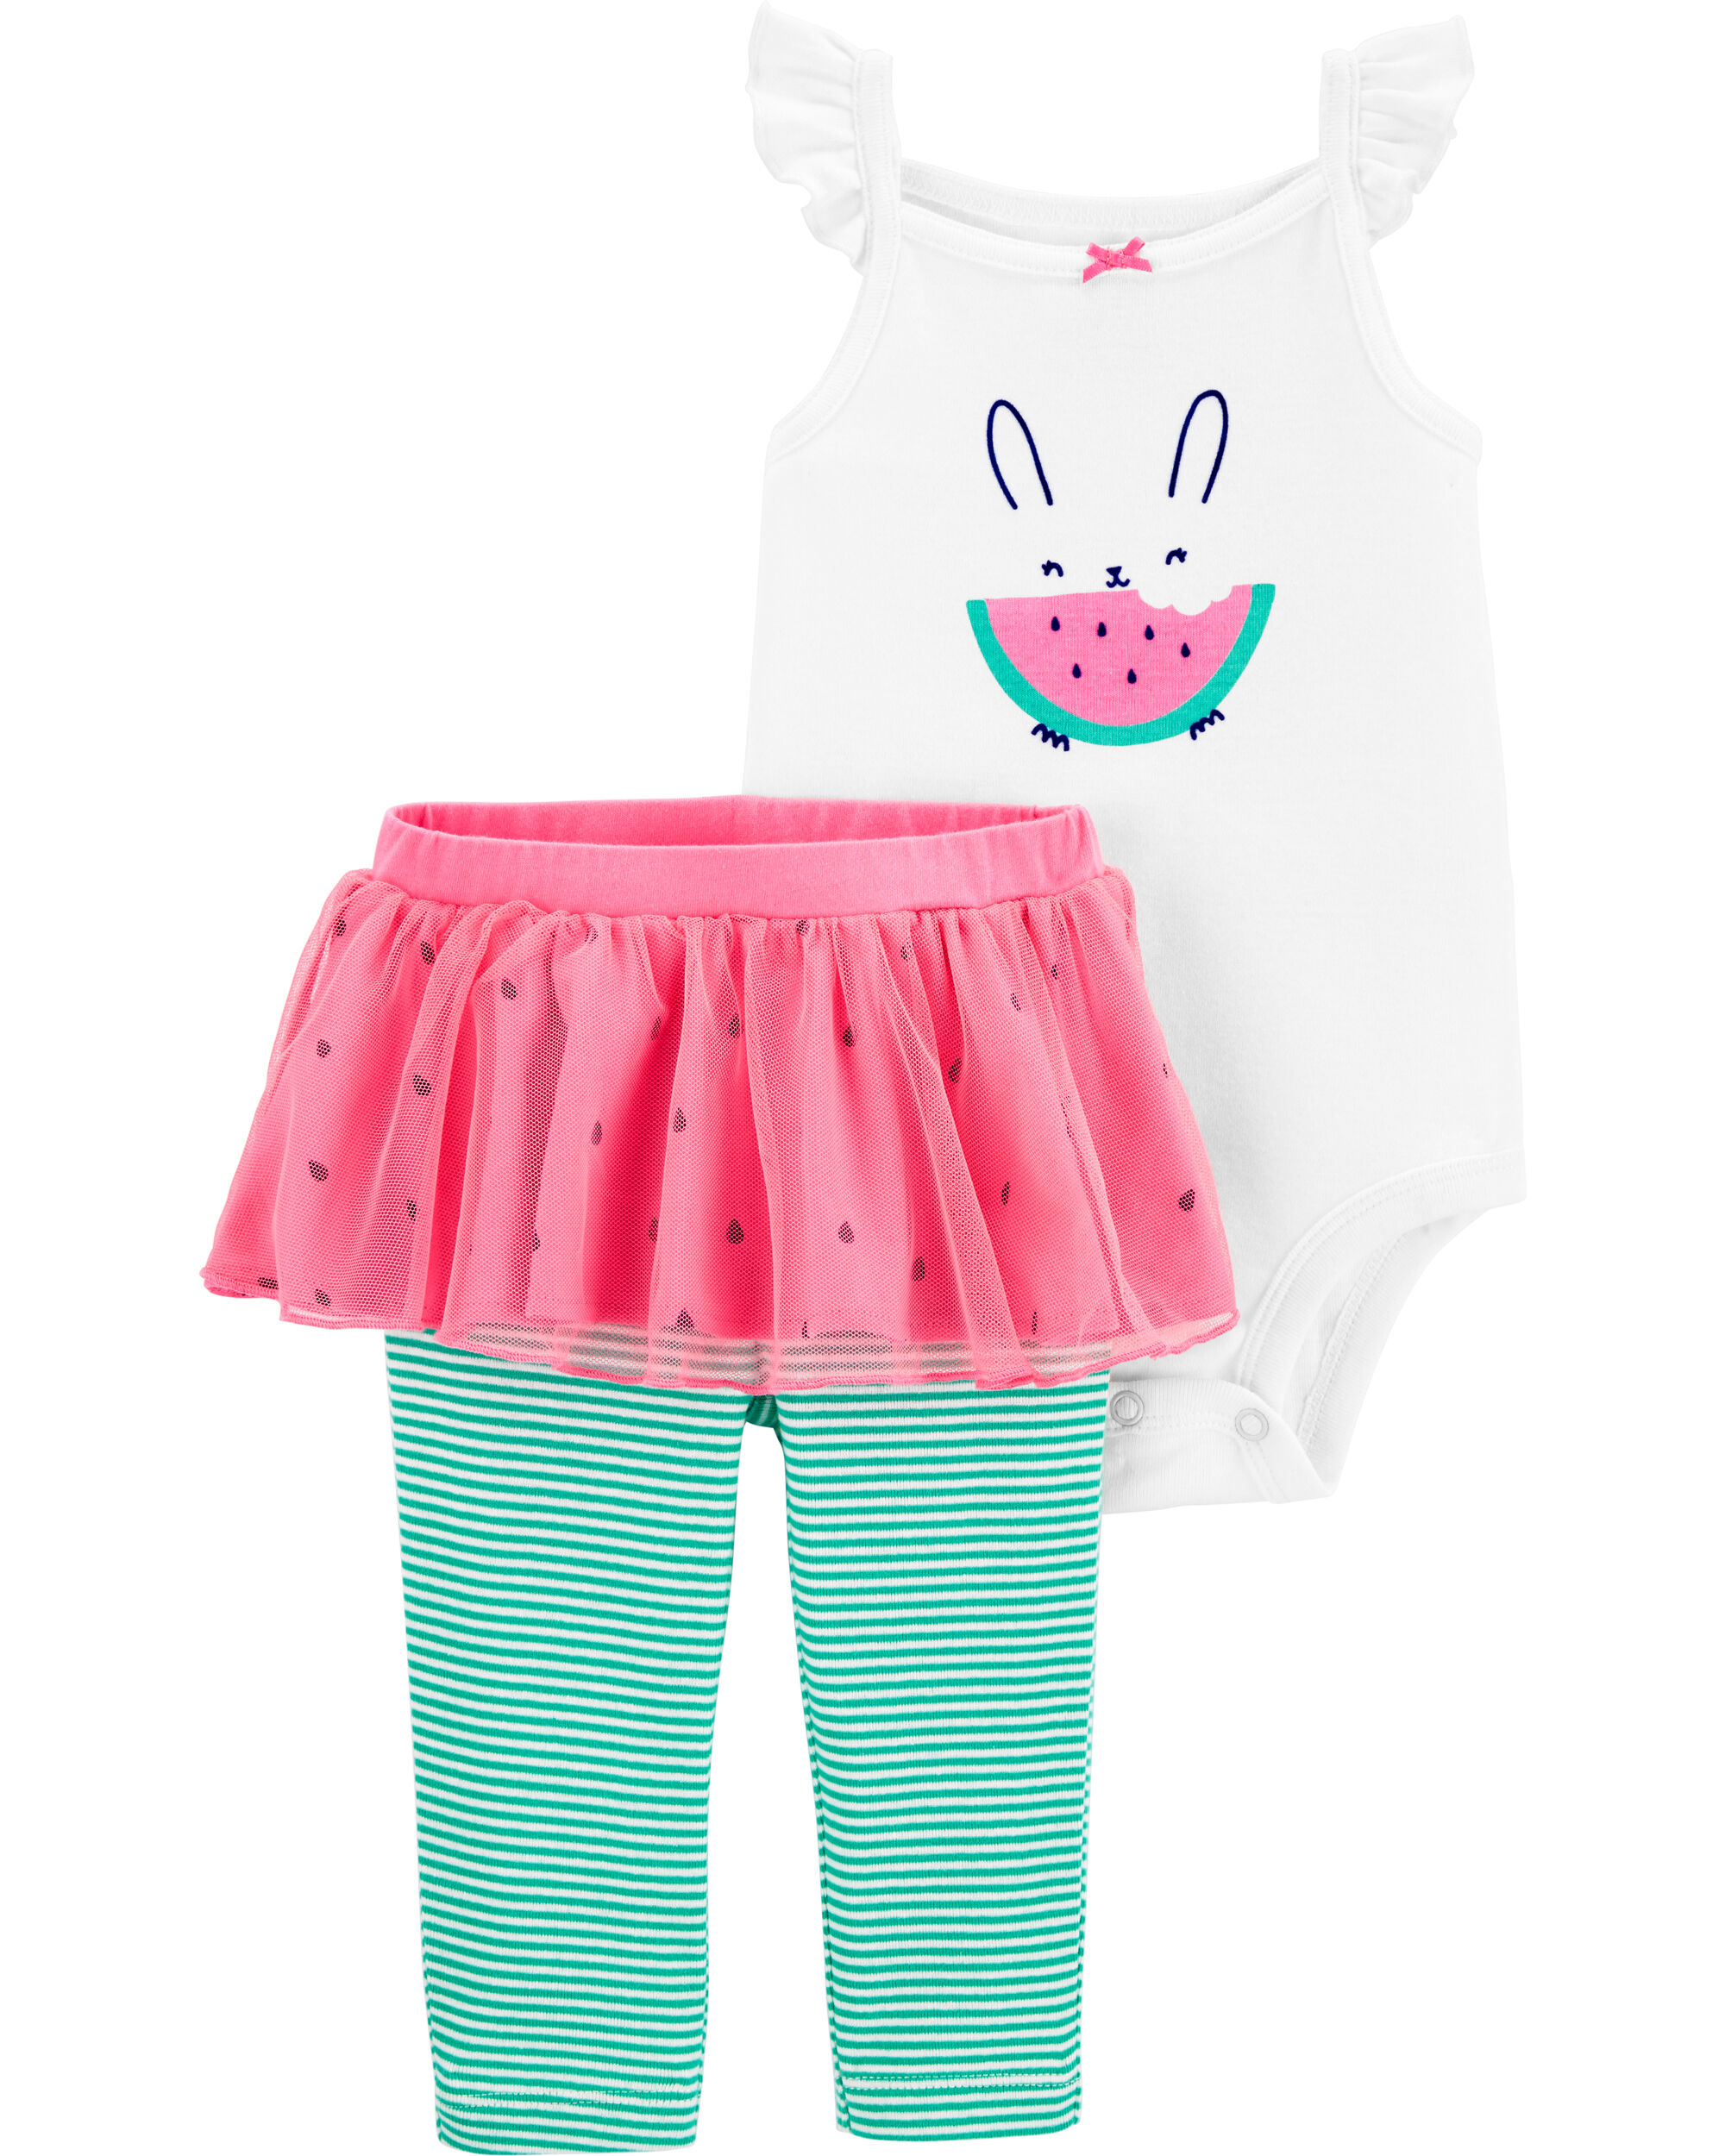 *DOORBUSTER* 2-Piece Watermelon Bodysuit & Tutu Pant Set